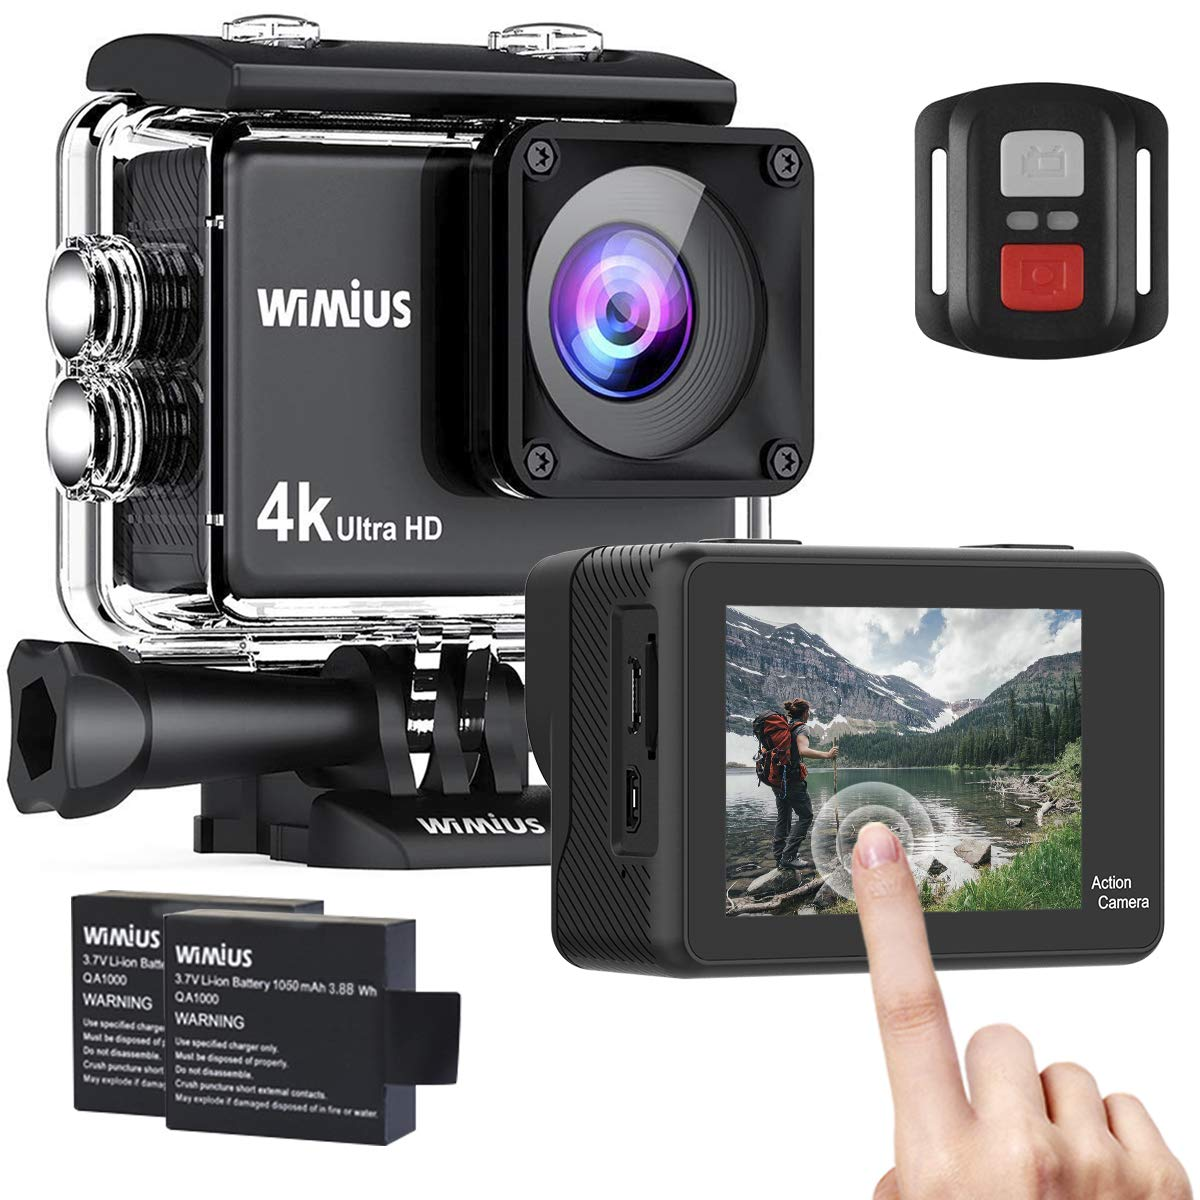 WiMiUS 4K Action Camera 2 Inch Touch Screen 16MP WiFi Sports Camera 30M Underwater Waterproof Camcorder 170 Degree Wide Angle Lens with 2 Rechargeable 1050mAh Batteries and Mounting Accessories by WiMiUS (Image #1)